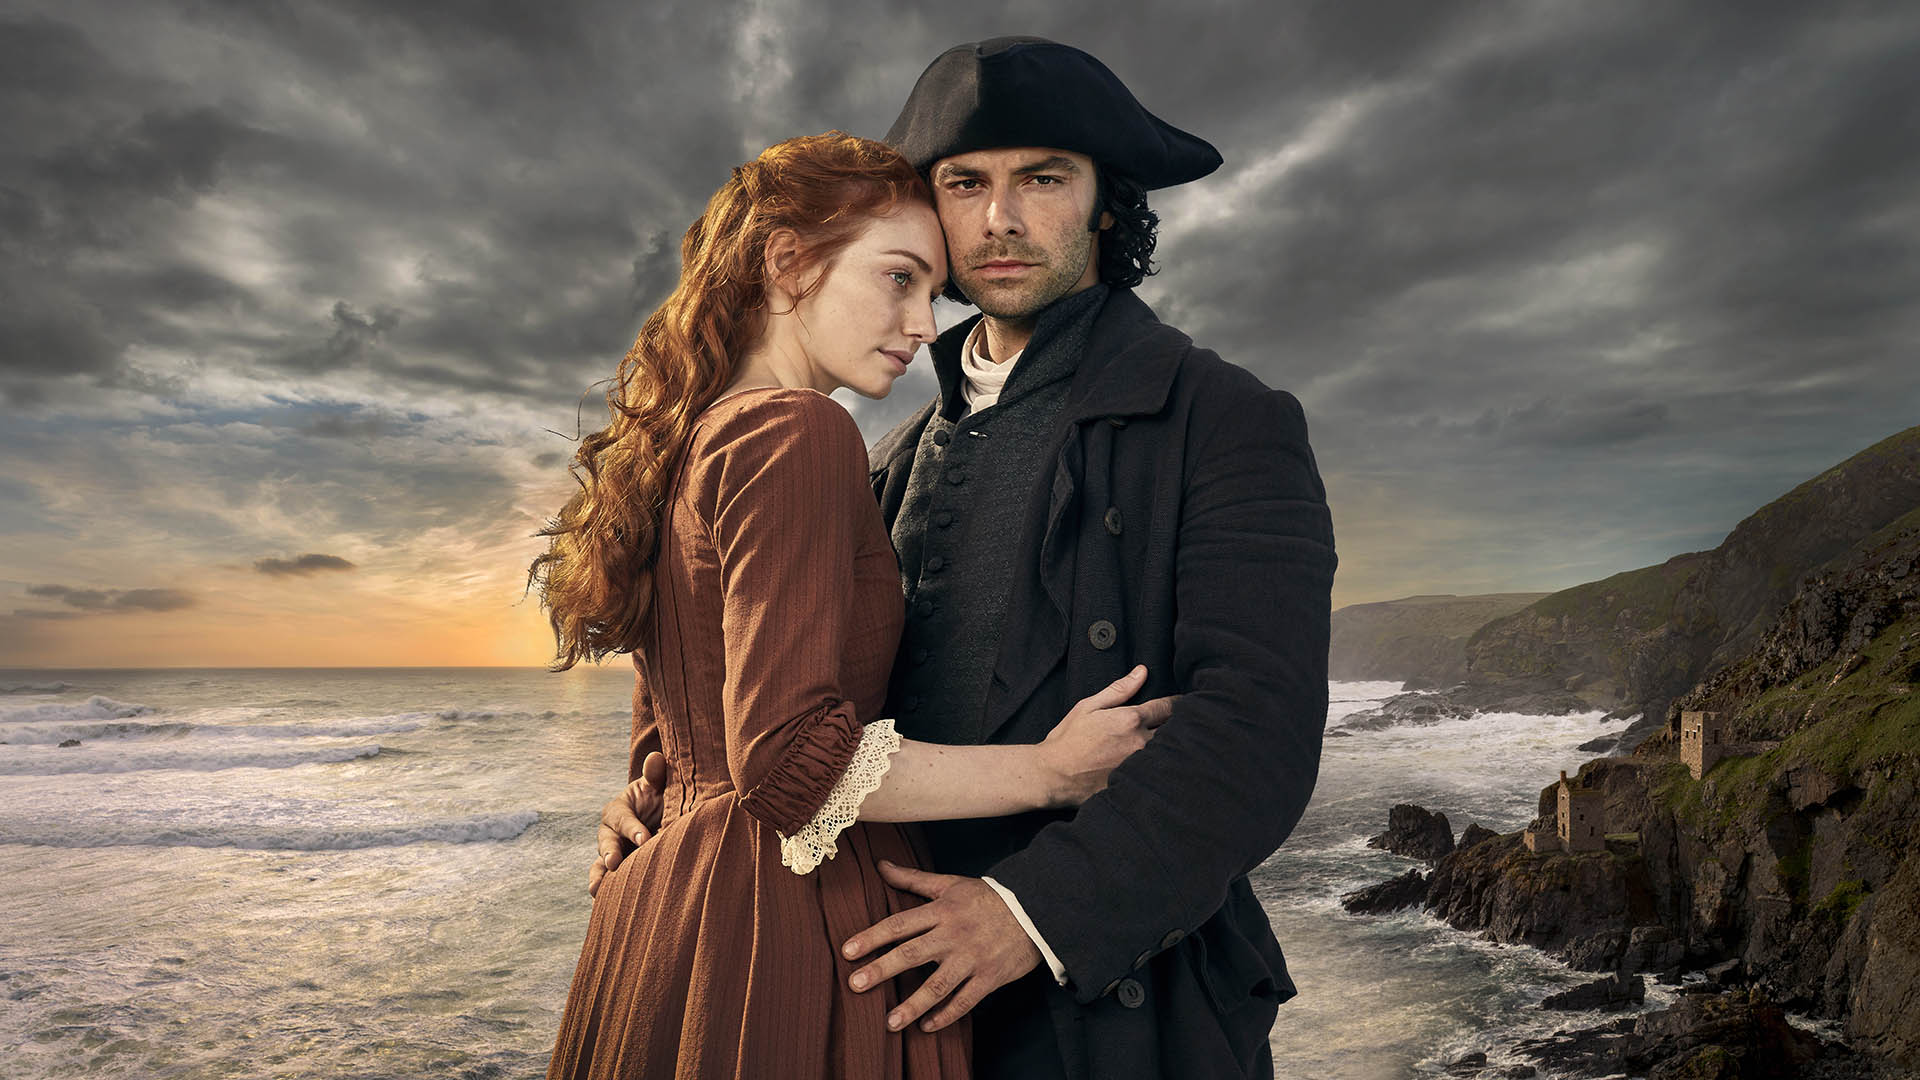 'Poldark' returns for a new season of action, intrigue